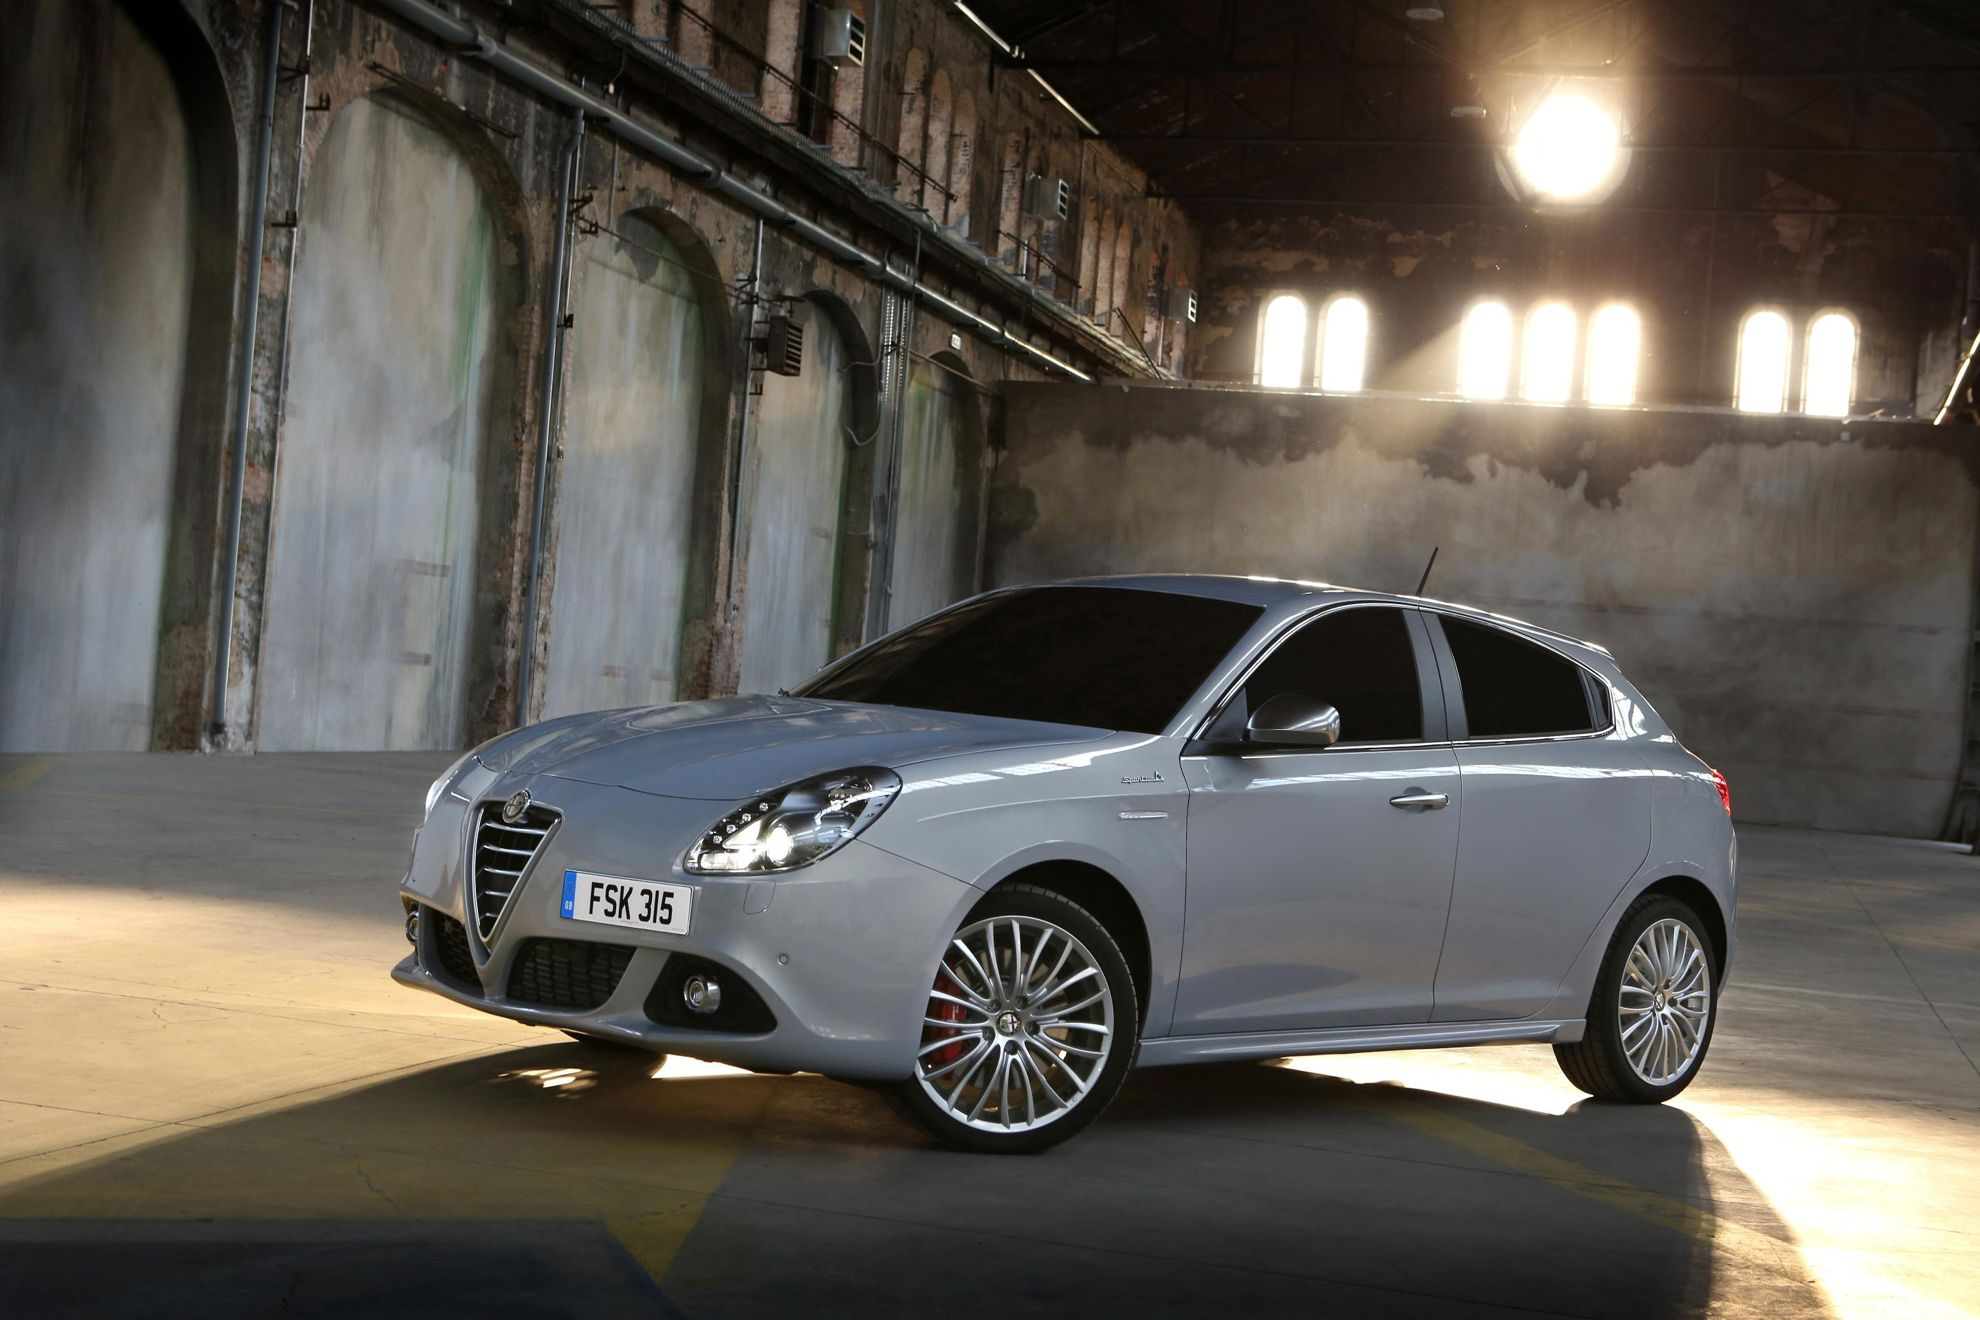 2014 alfa romeo giulietta car sale in the uk. Black Bedroom Furniture Sets. Home Design Ideas